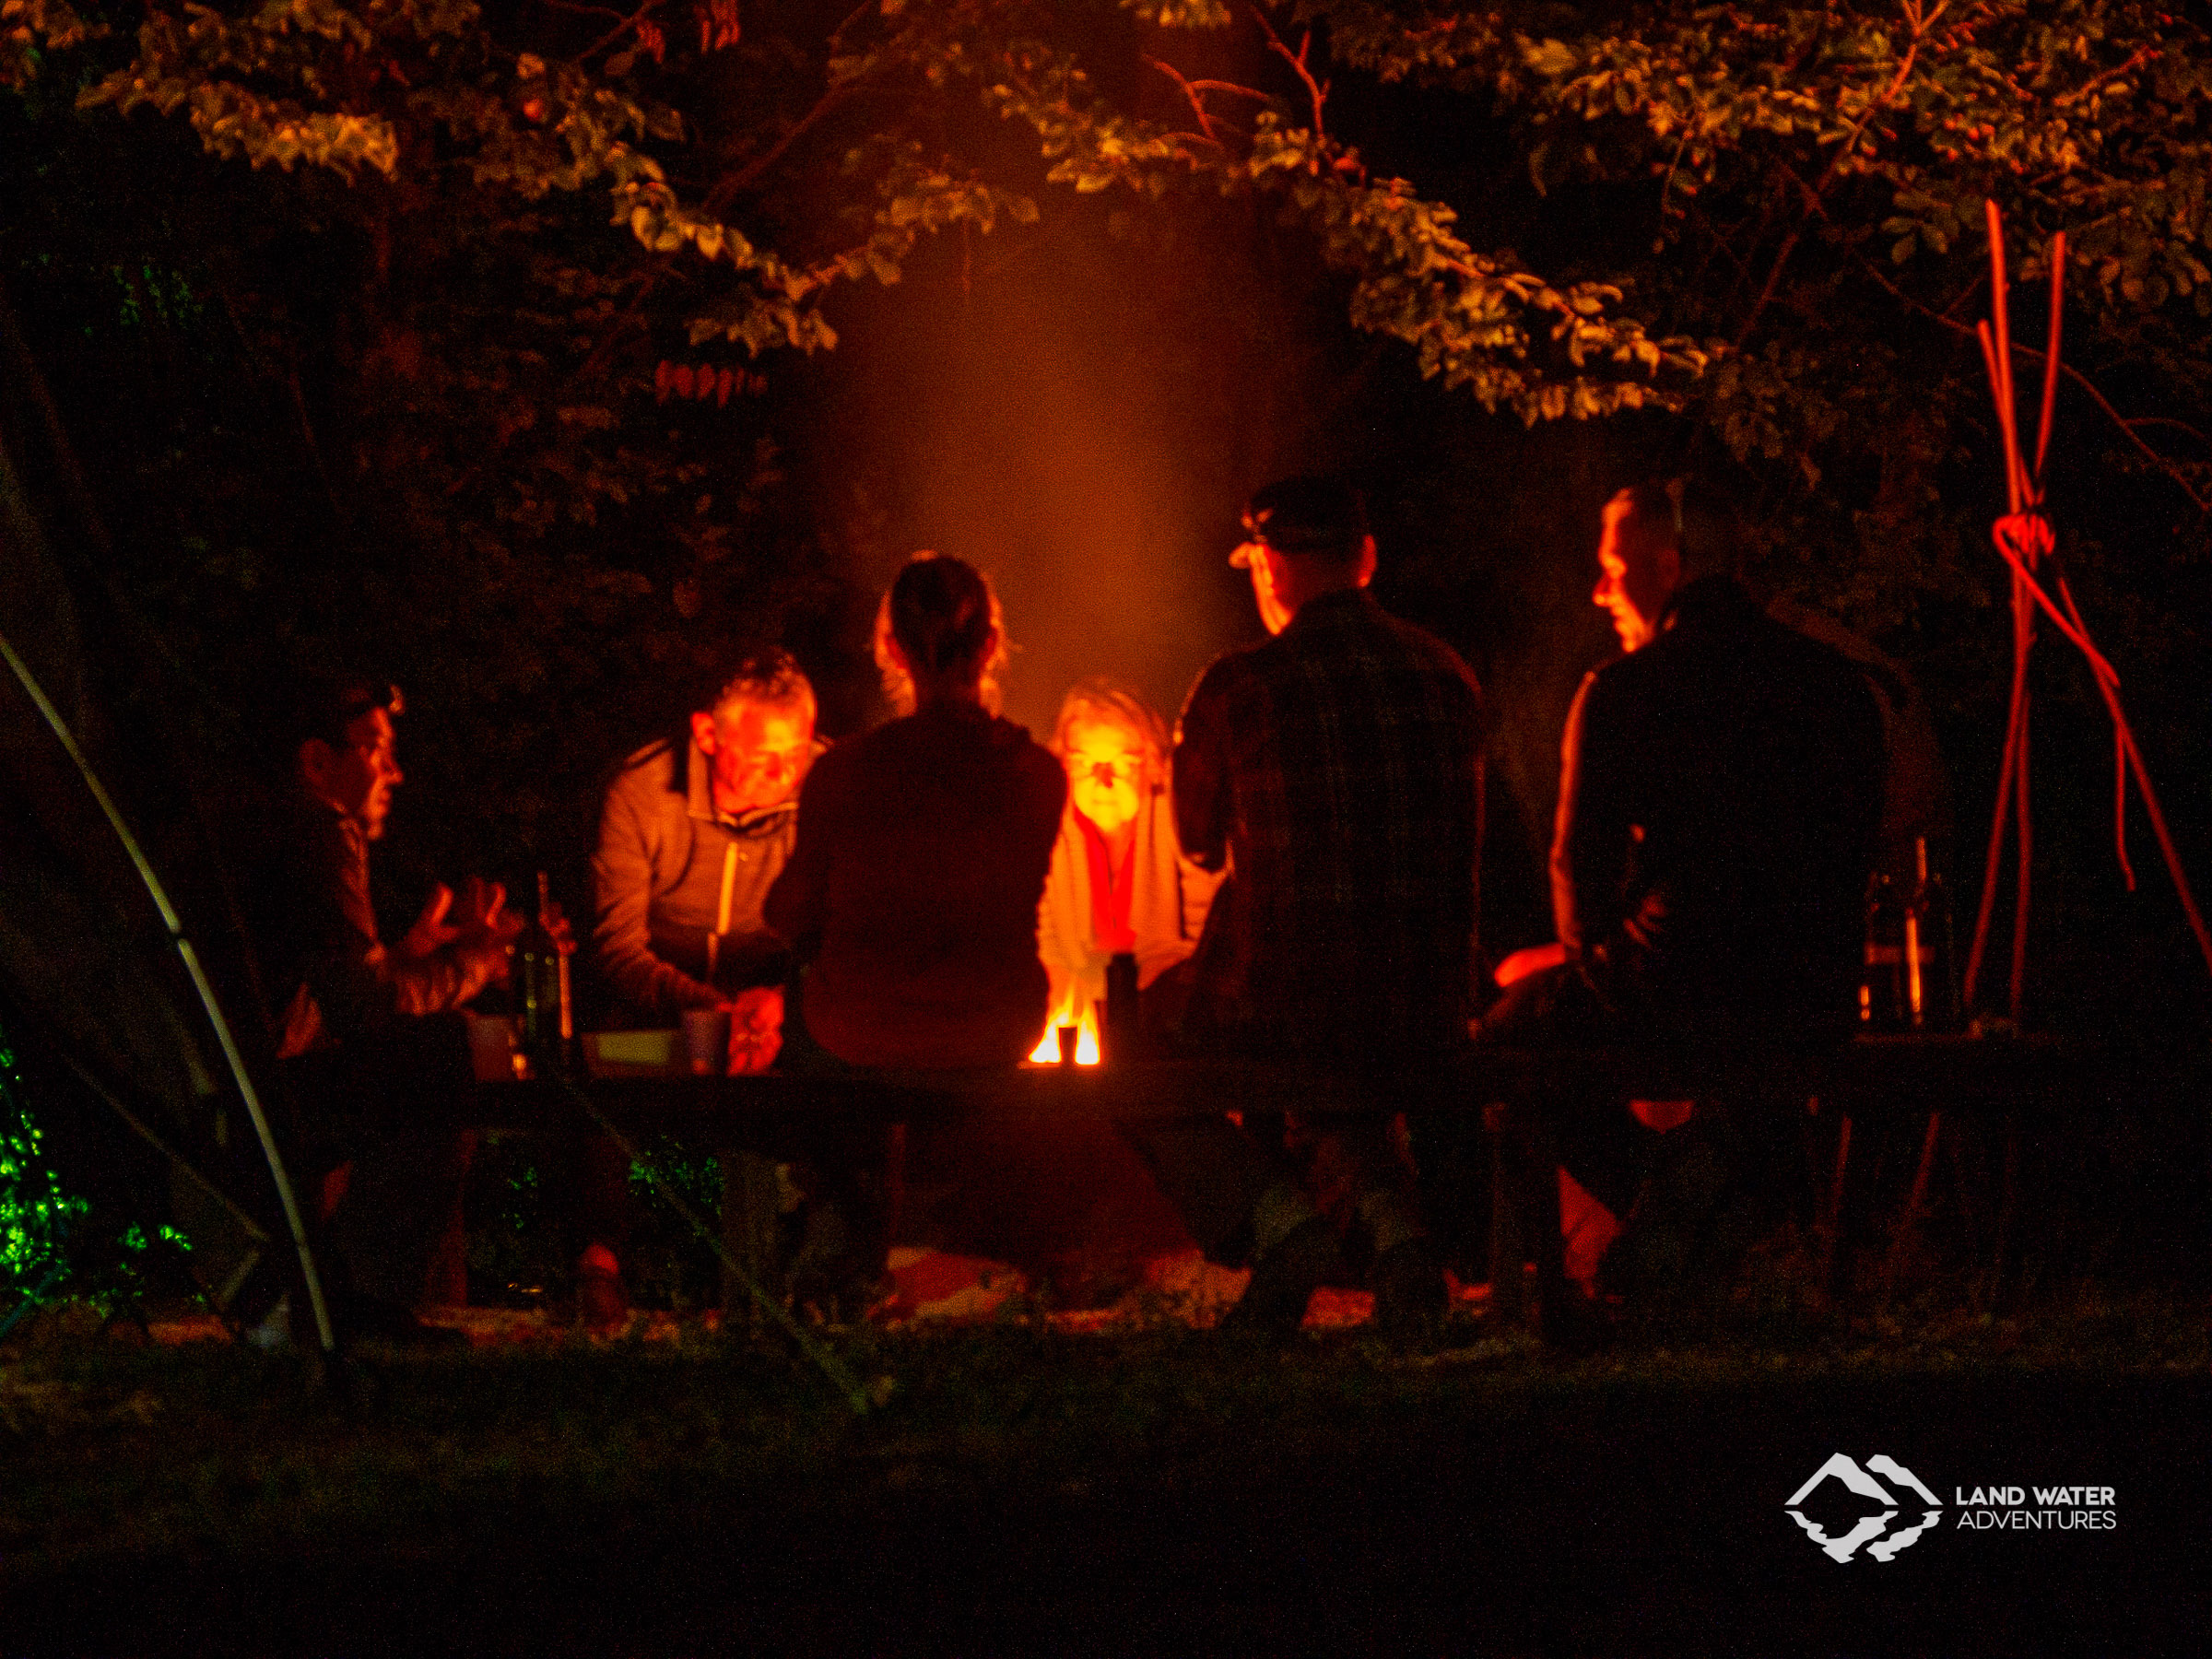 Lagerfeuerabend bei LWA © Land Water Adventures